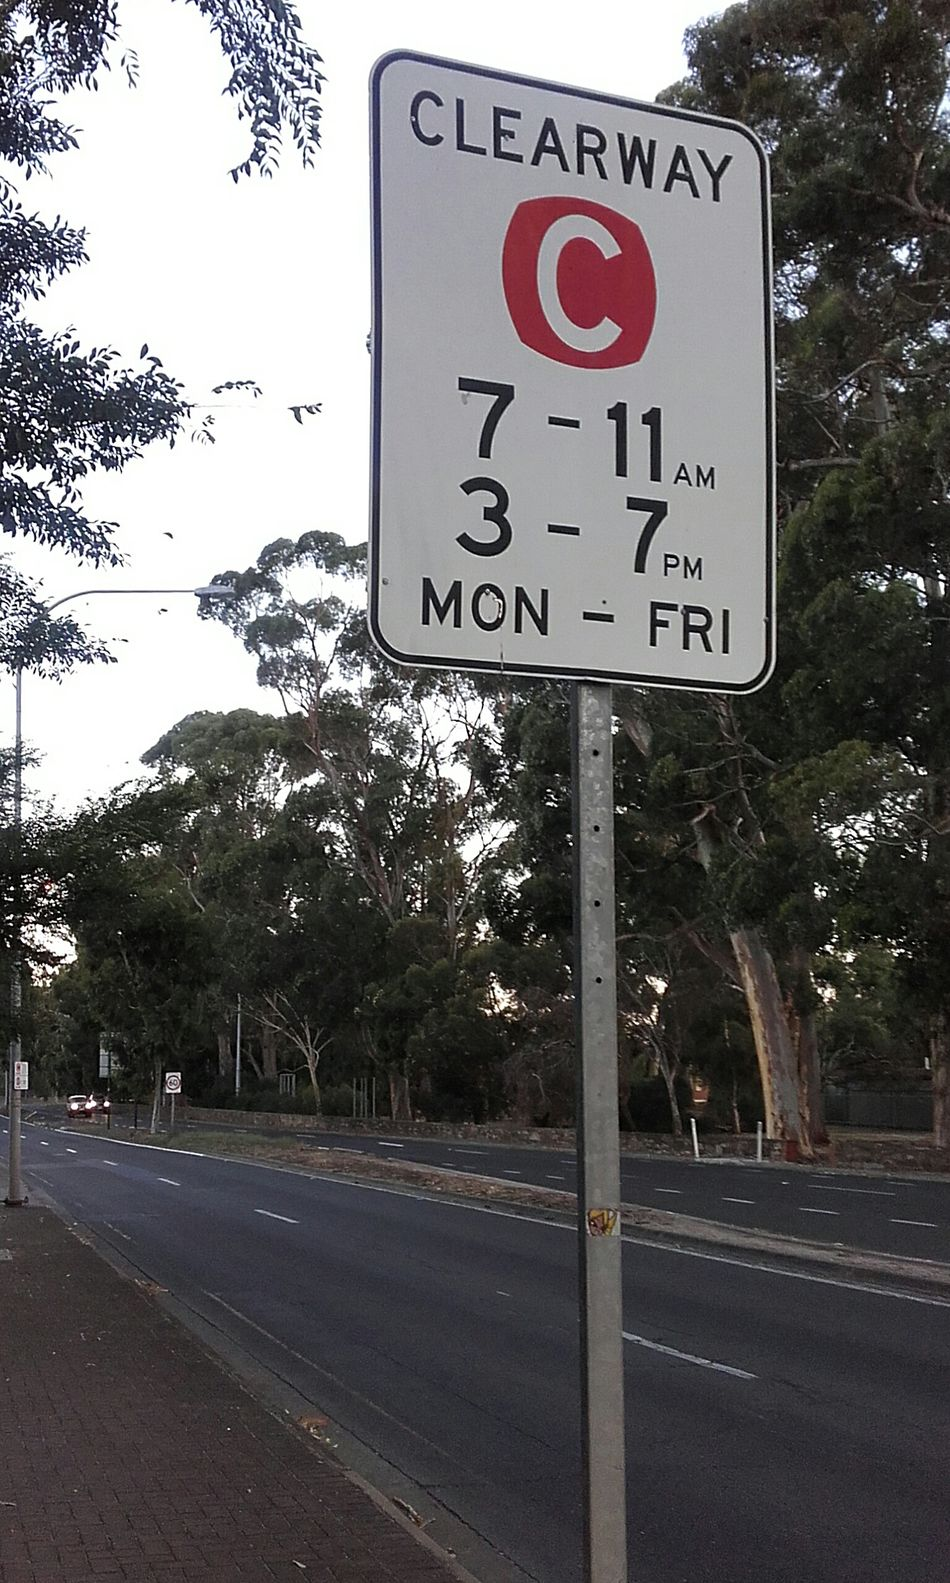 Streetphotography C Mon-Fri Road Signs Street Photography City Of Adelaide Alphabetical & Numerical AlphaNumeric Parking Signs Sign Signs_collection SignsSignsAndMoreSigns Signage Signs & More Signs Signs And Symbols SignSignEverywhereASign Signs Signporn Signs, Signs, & More Signs SIGN. Sign Post Signs Clearway Monday-Friday Clearway Zone